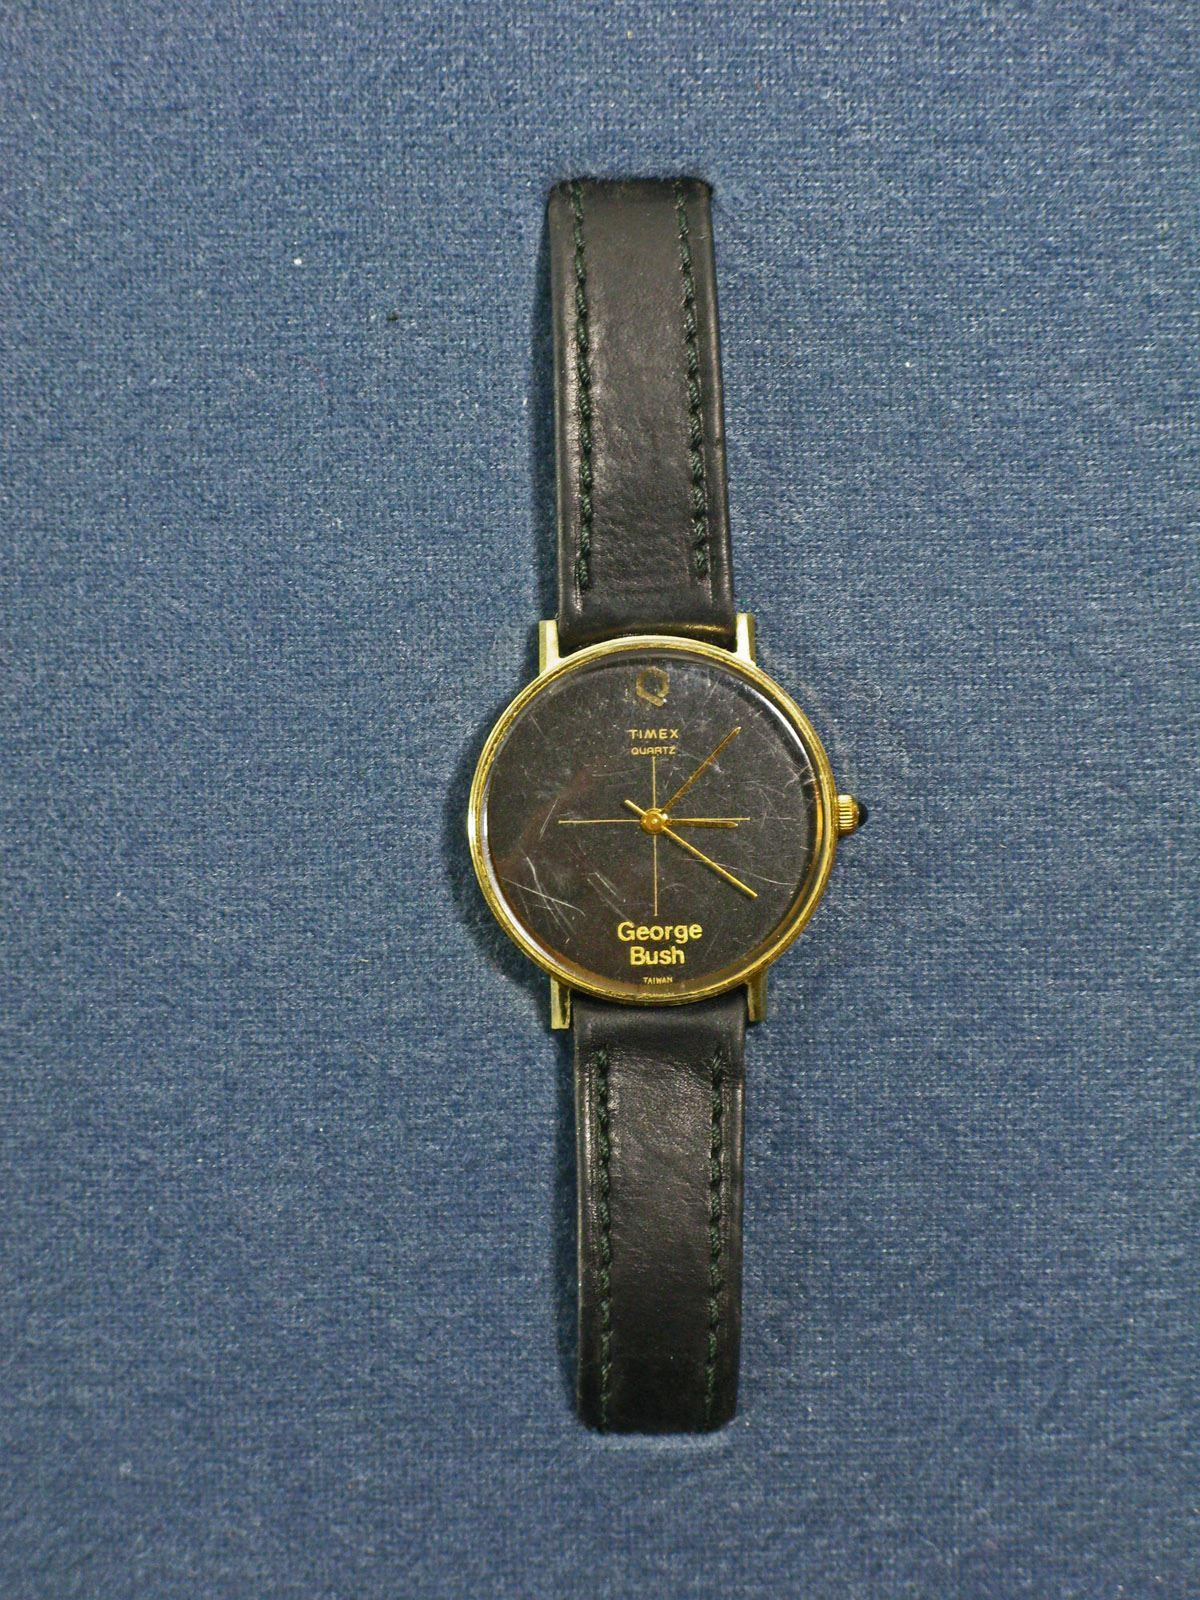 """Rare Presidential ALS with """"George Bush"""" Timex Watch Presented by George H.W. Bush to an Incumbent Republican Congressman"""